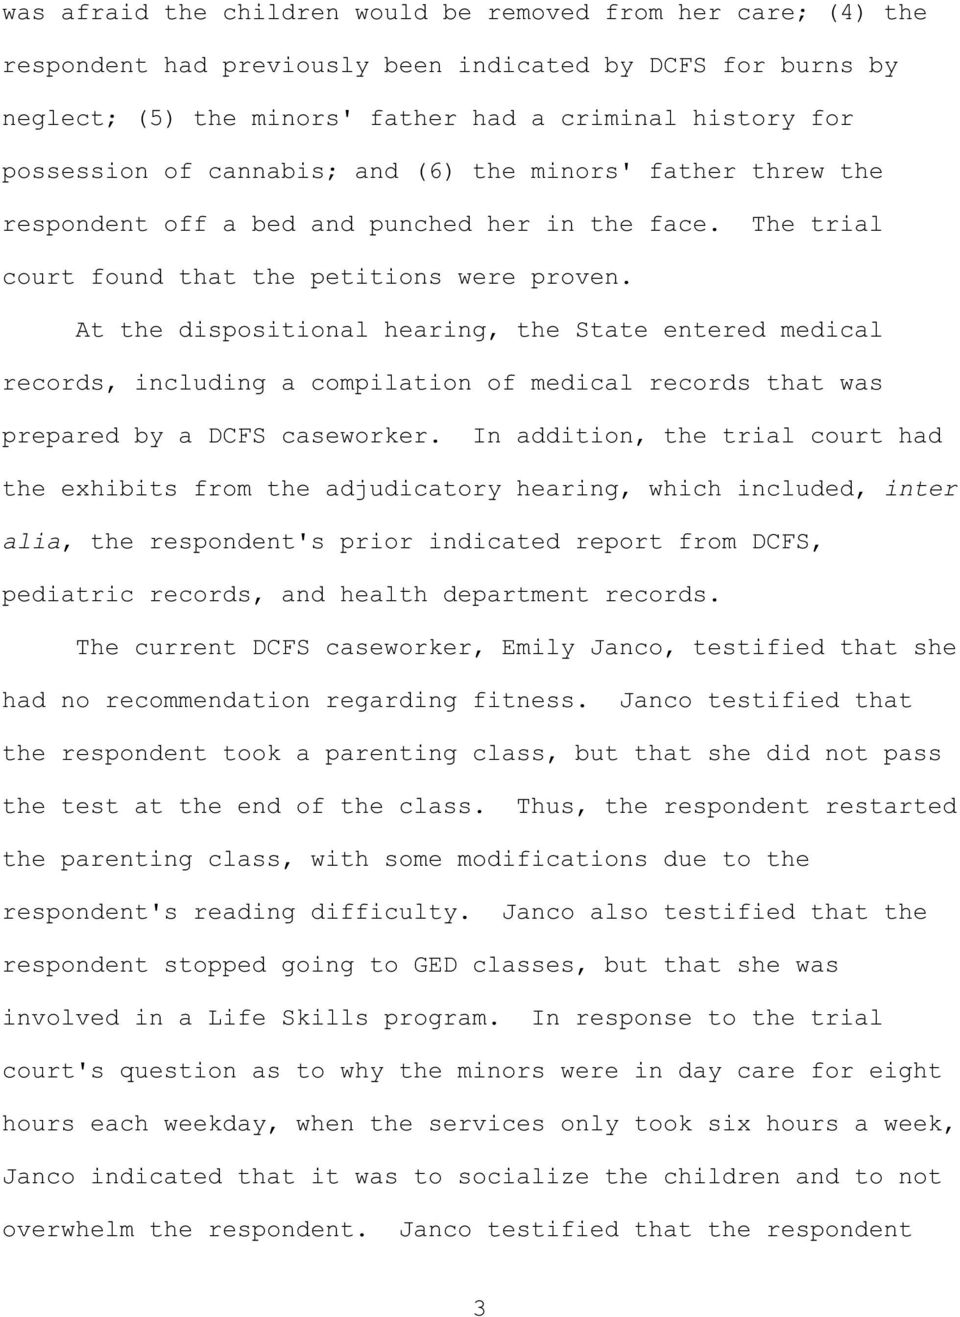 At the dispositional hearing, the State entered medical records, including a compilation of medical records that was prepared by a DCFS caseworker.